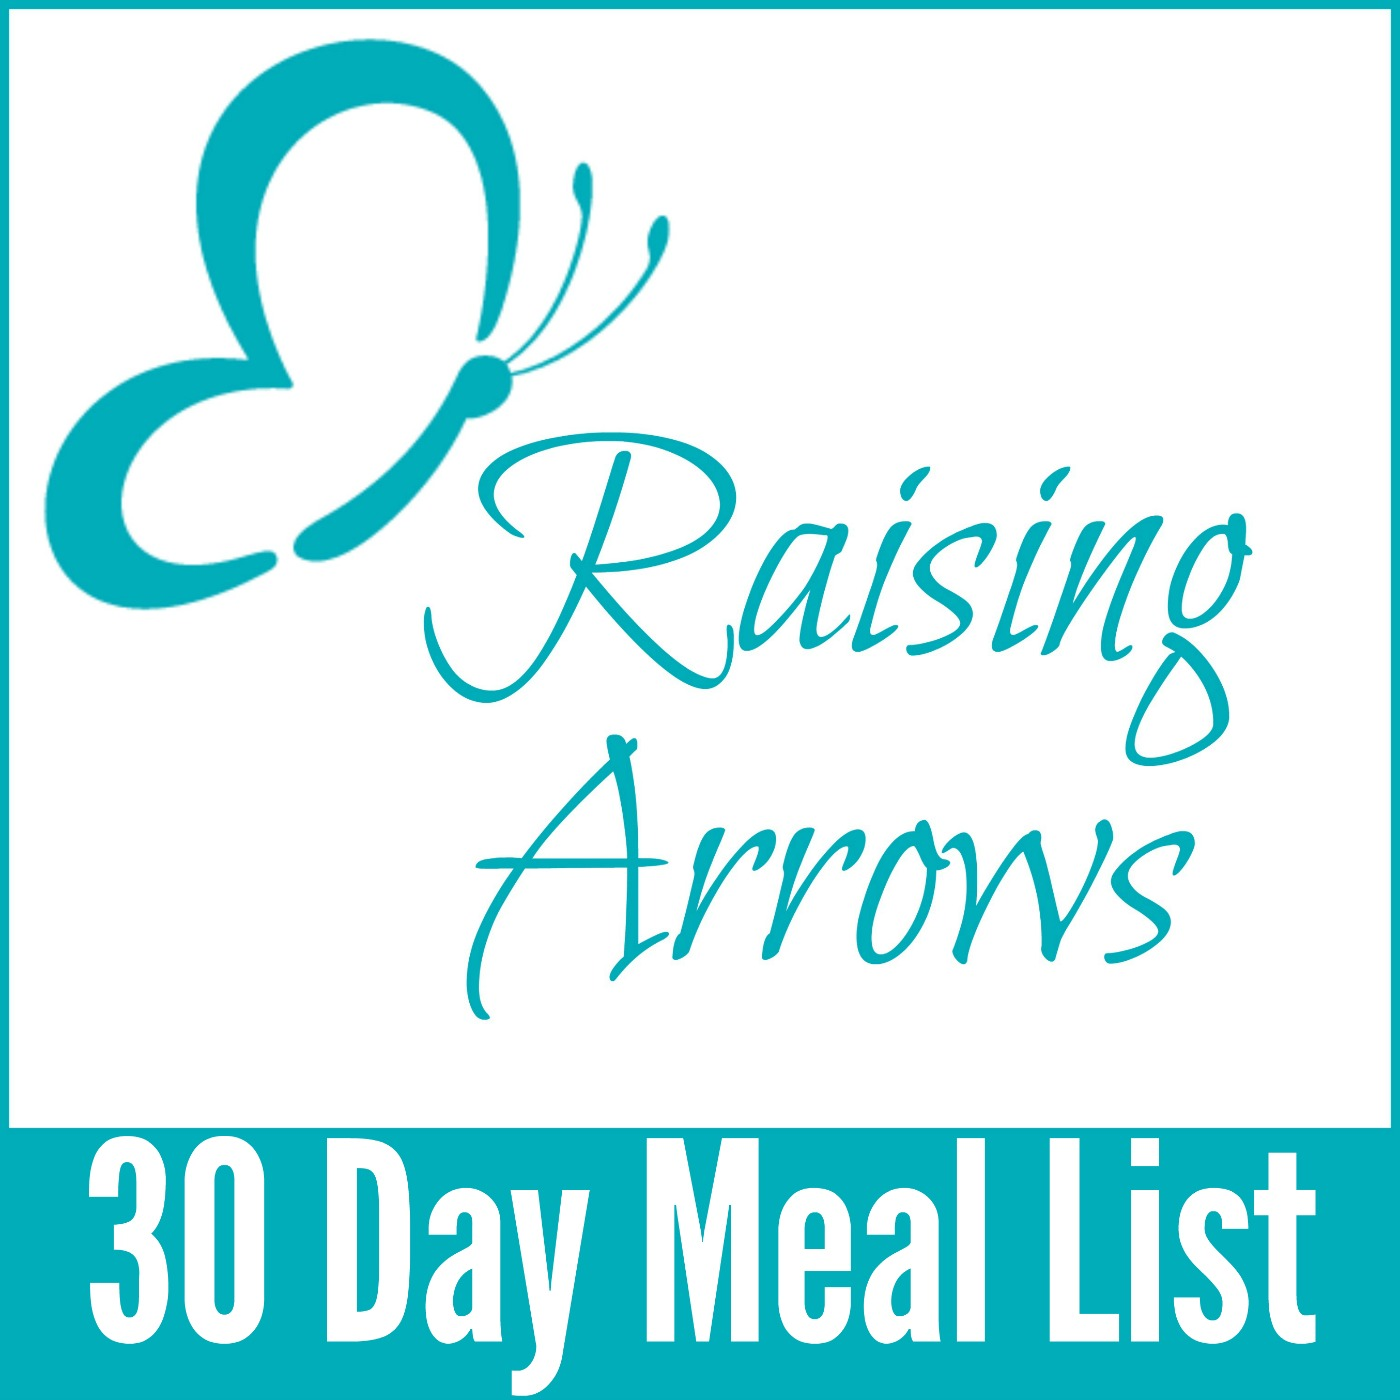 Creating a 30 Day Master Meal List Podcast!